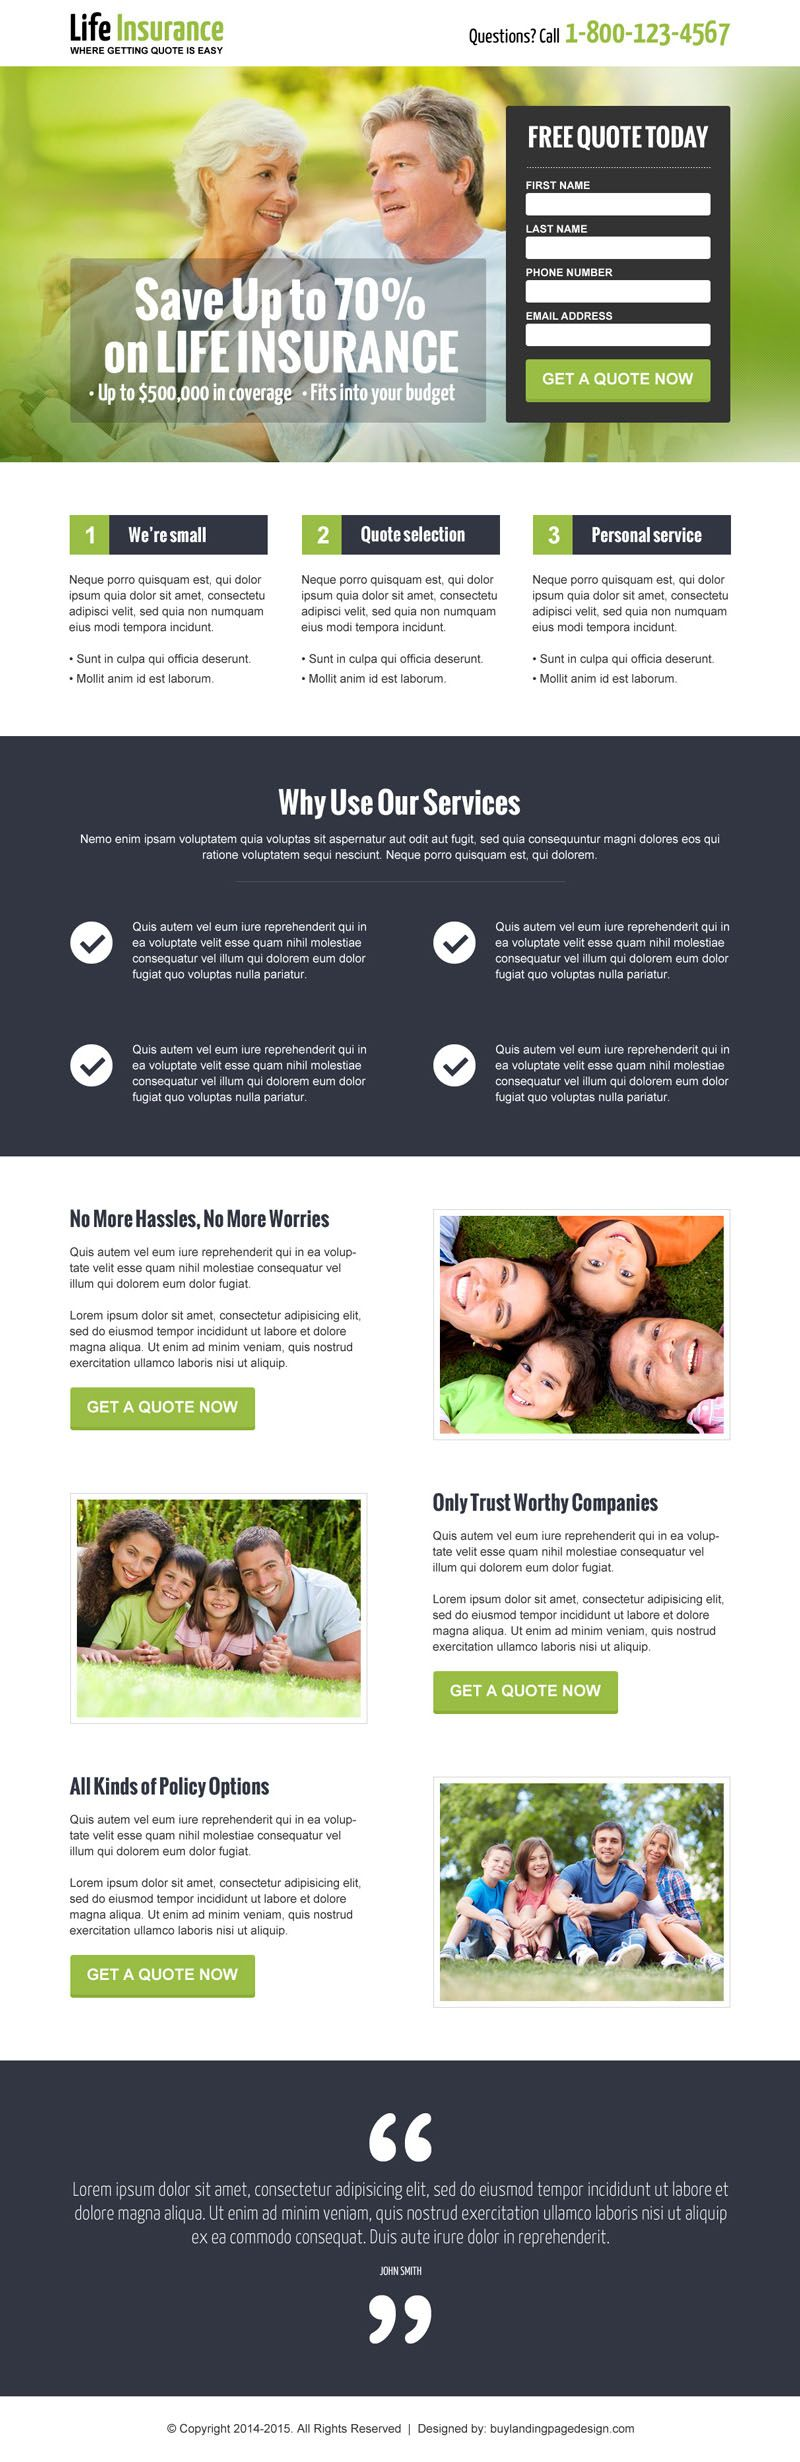 Best Optimized Life Insurance Landing Page Designs To Capture